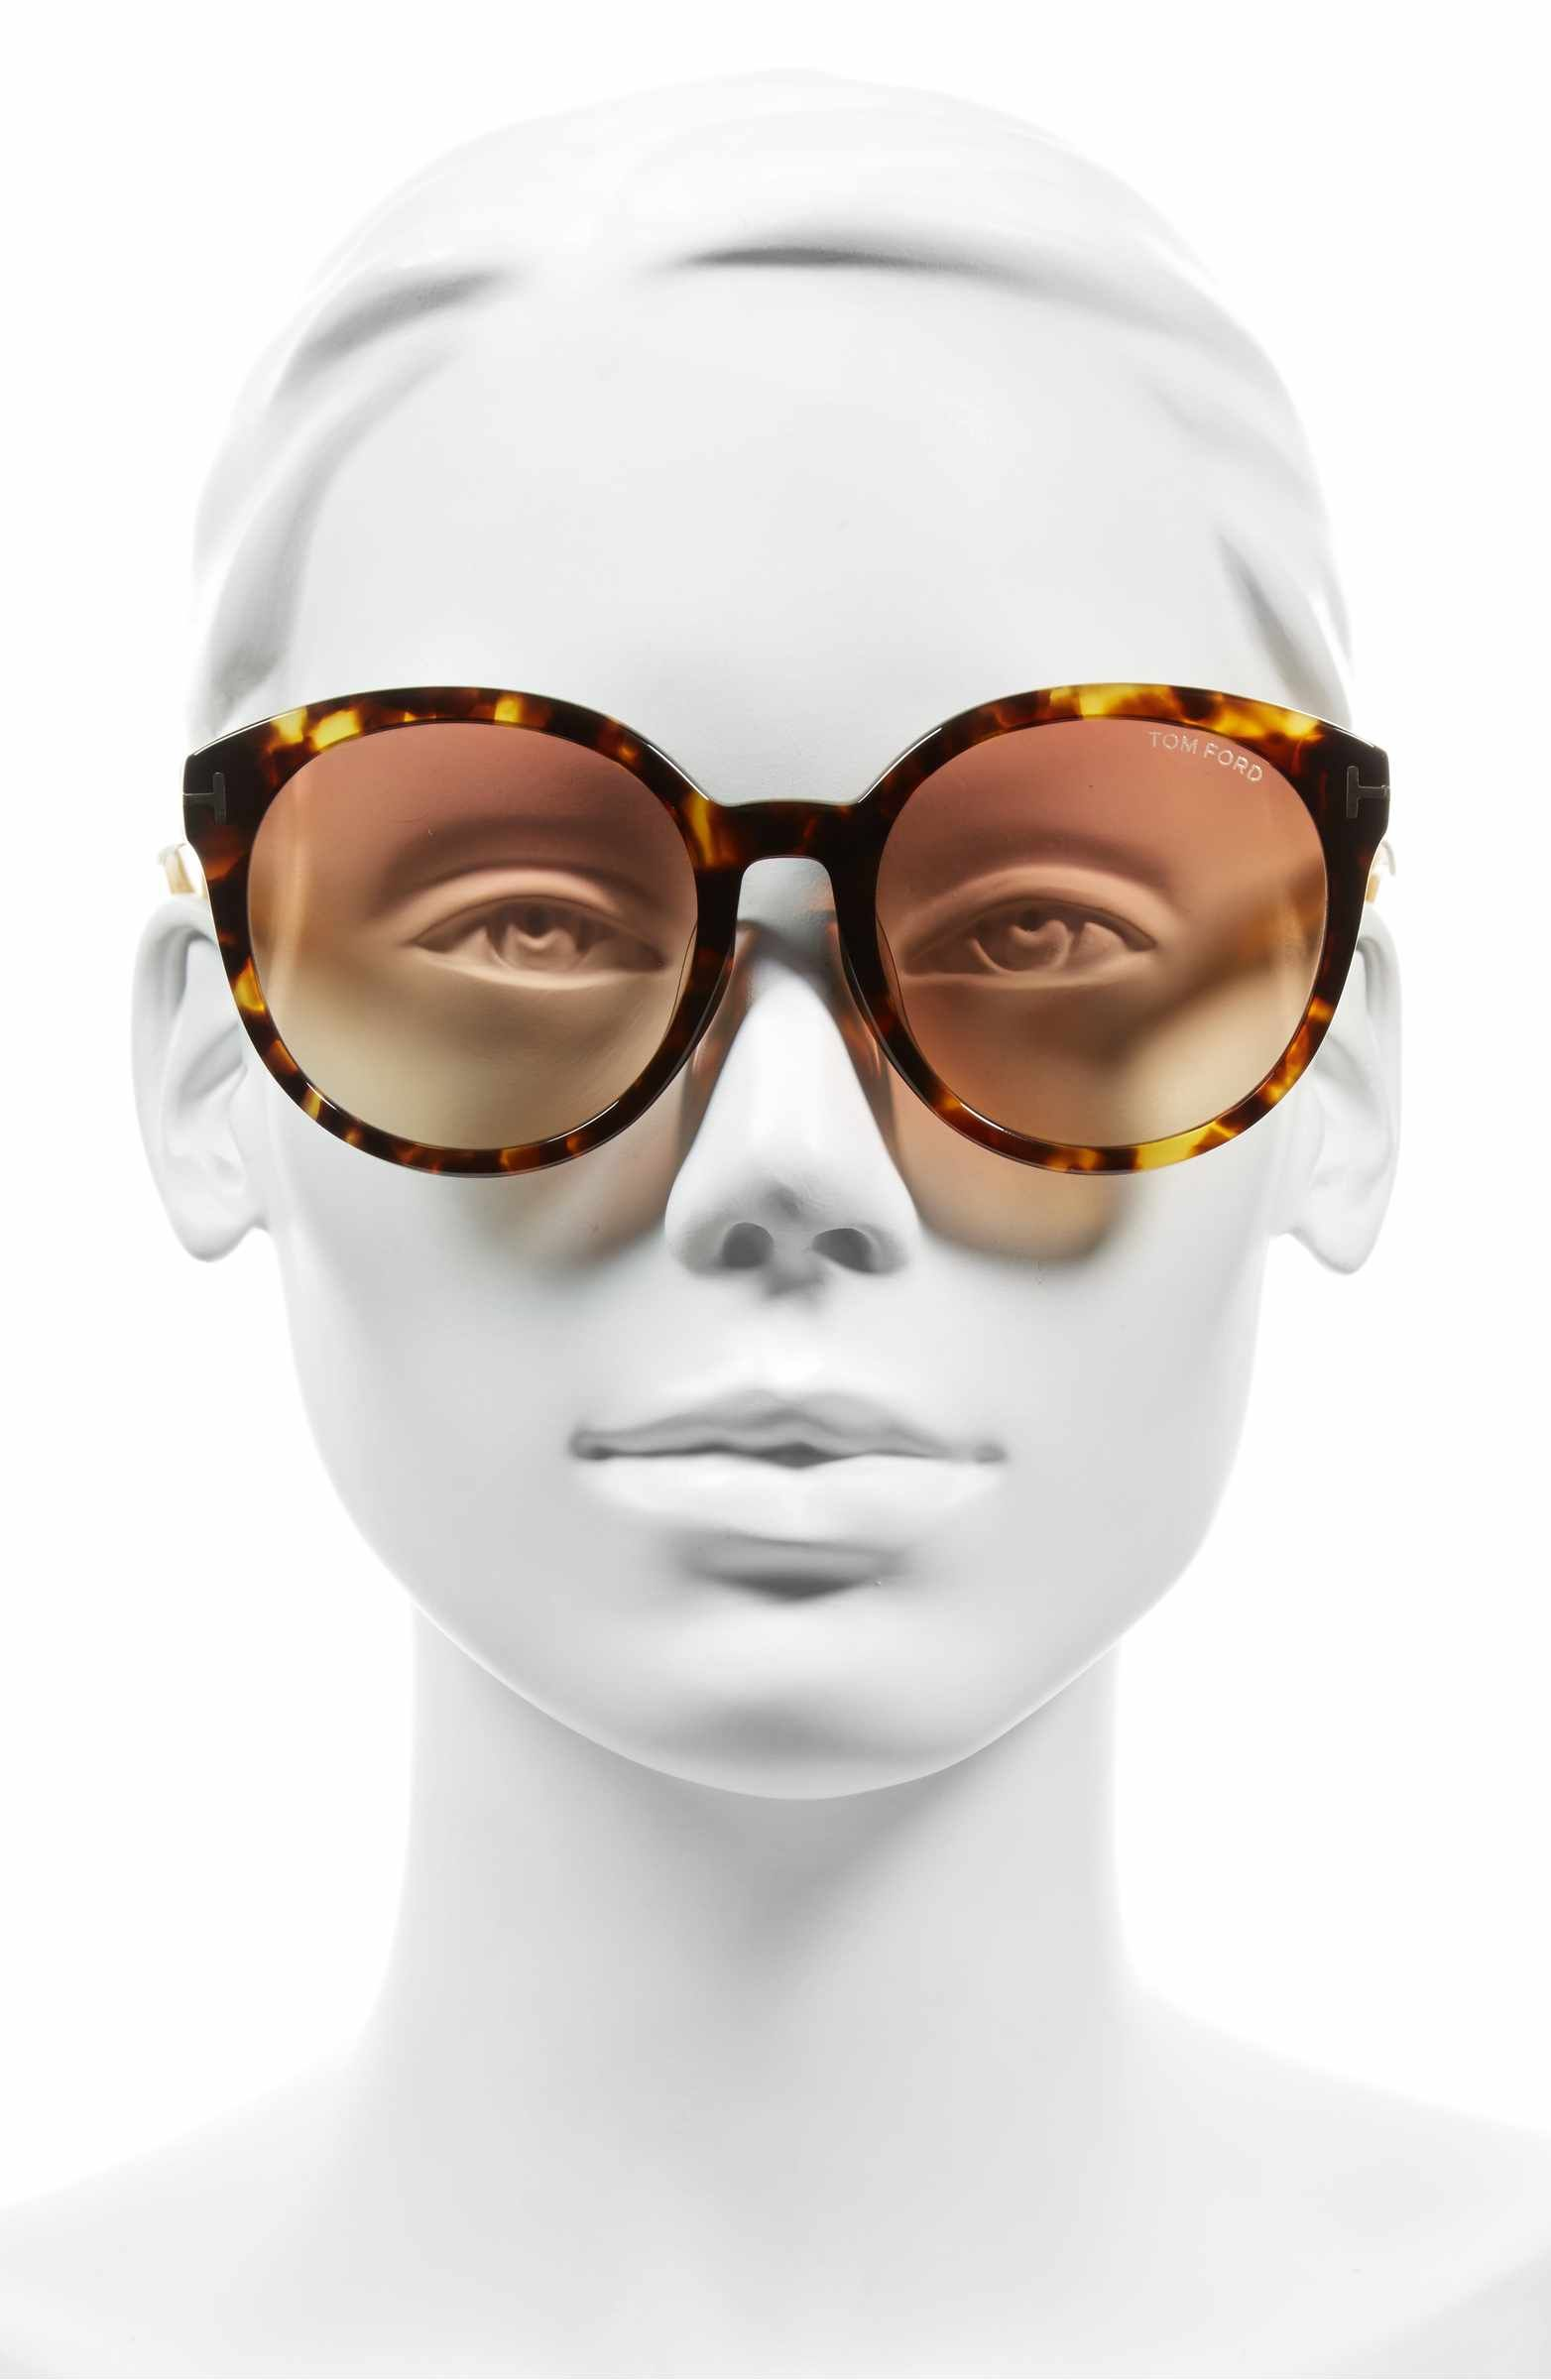 Main Image - Tom Ford Philippa Special Fit 55mm Sunglasses ... dbb6f50a7a